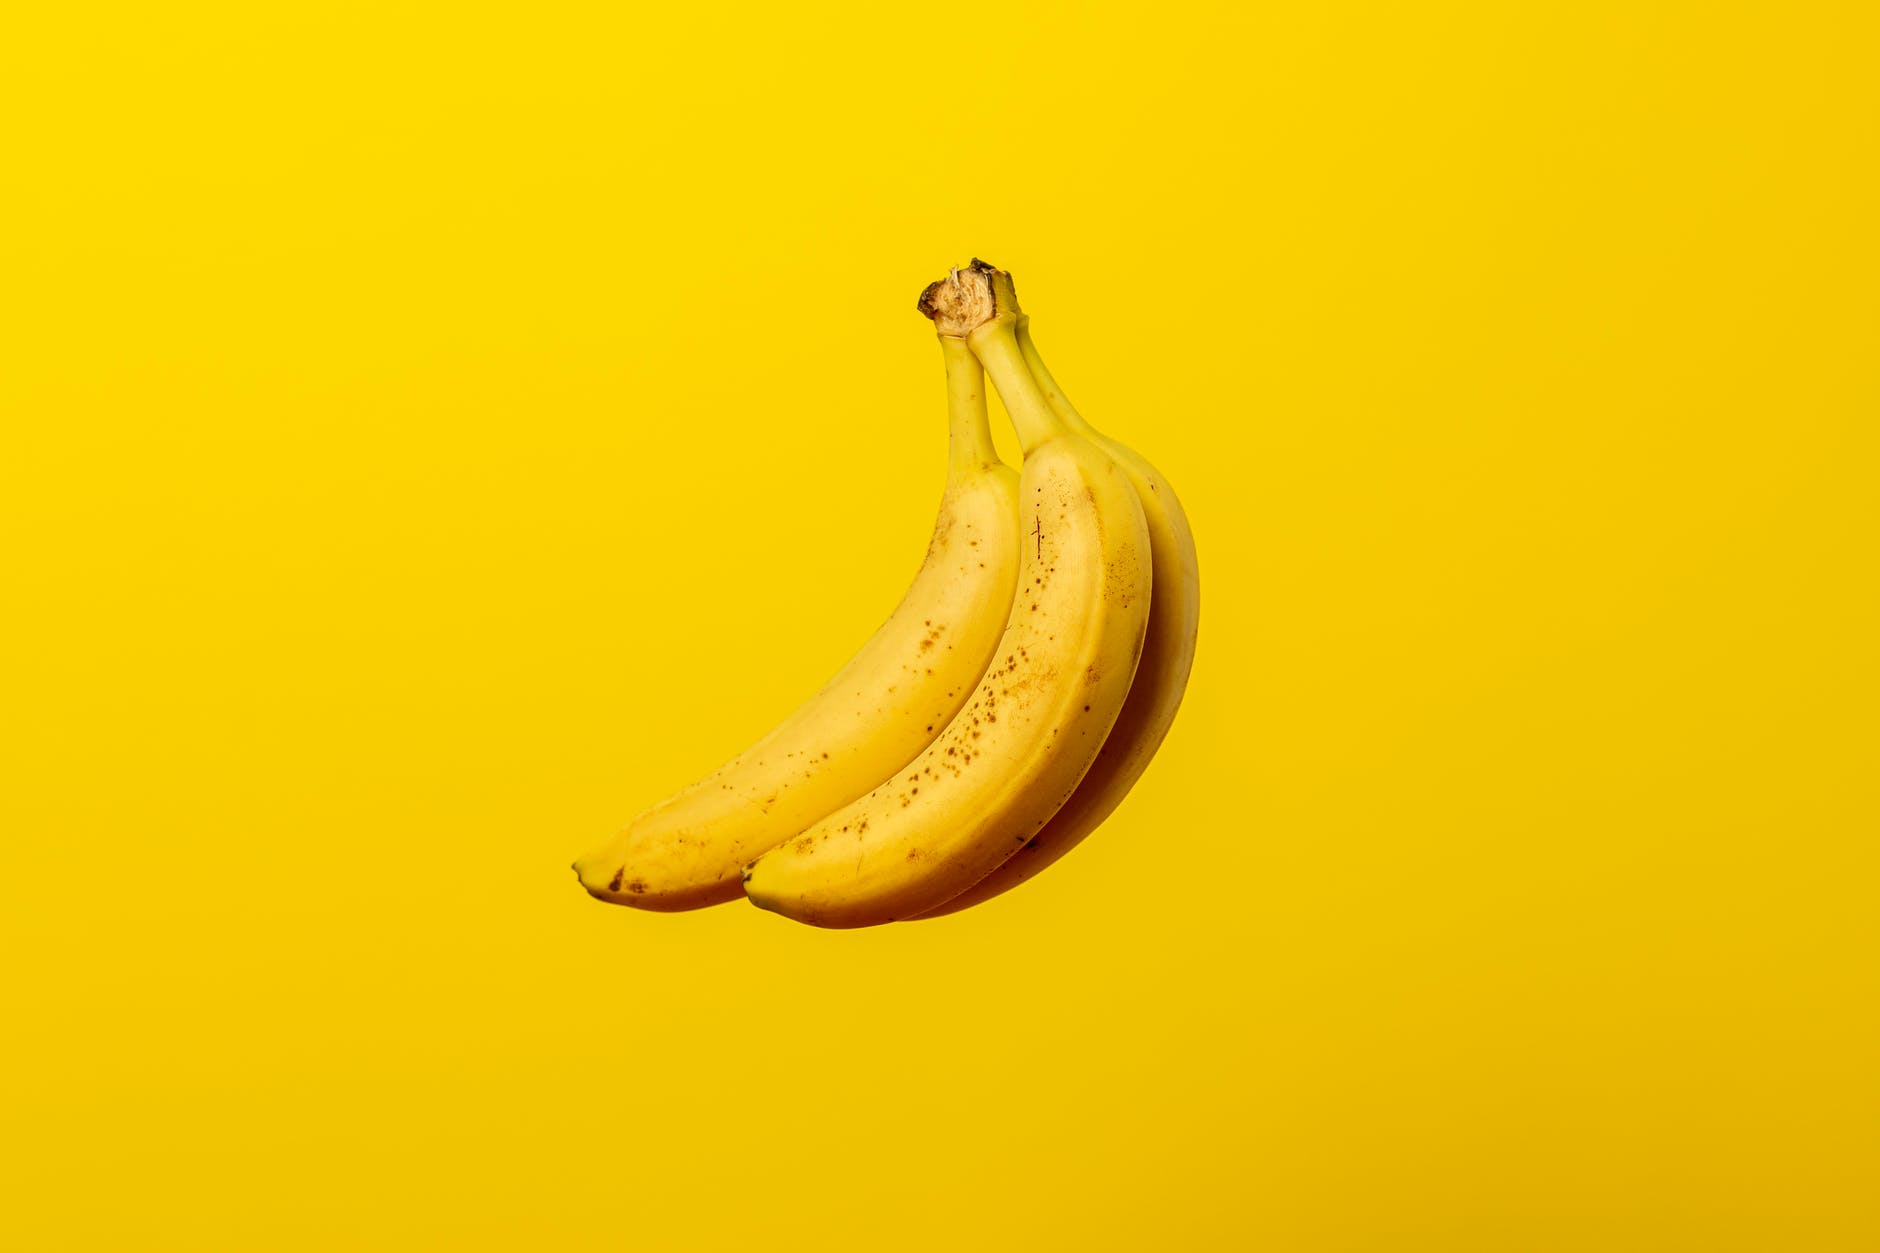 copy space photo of yellow bananas